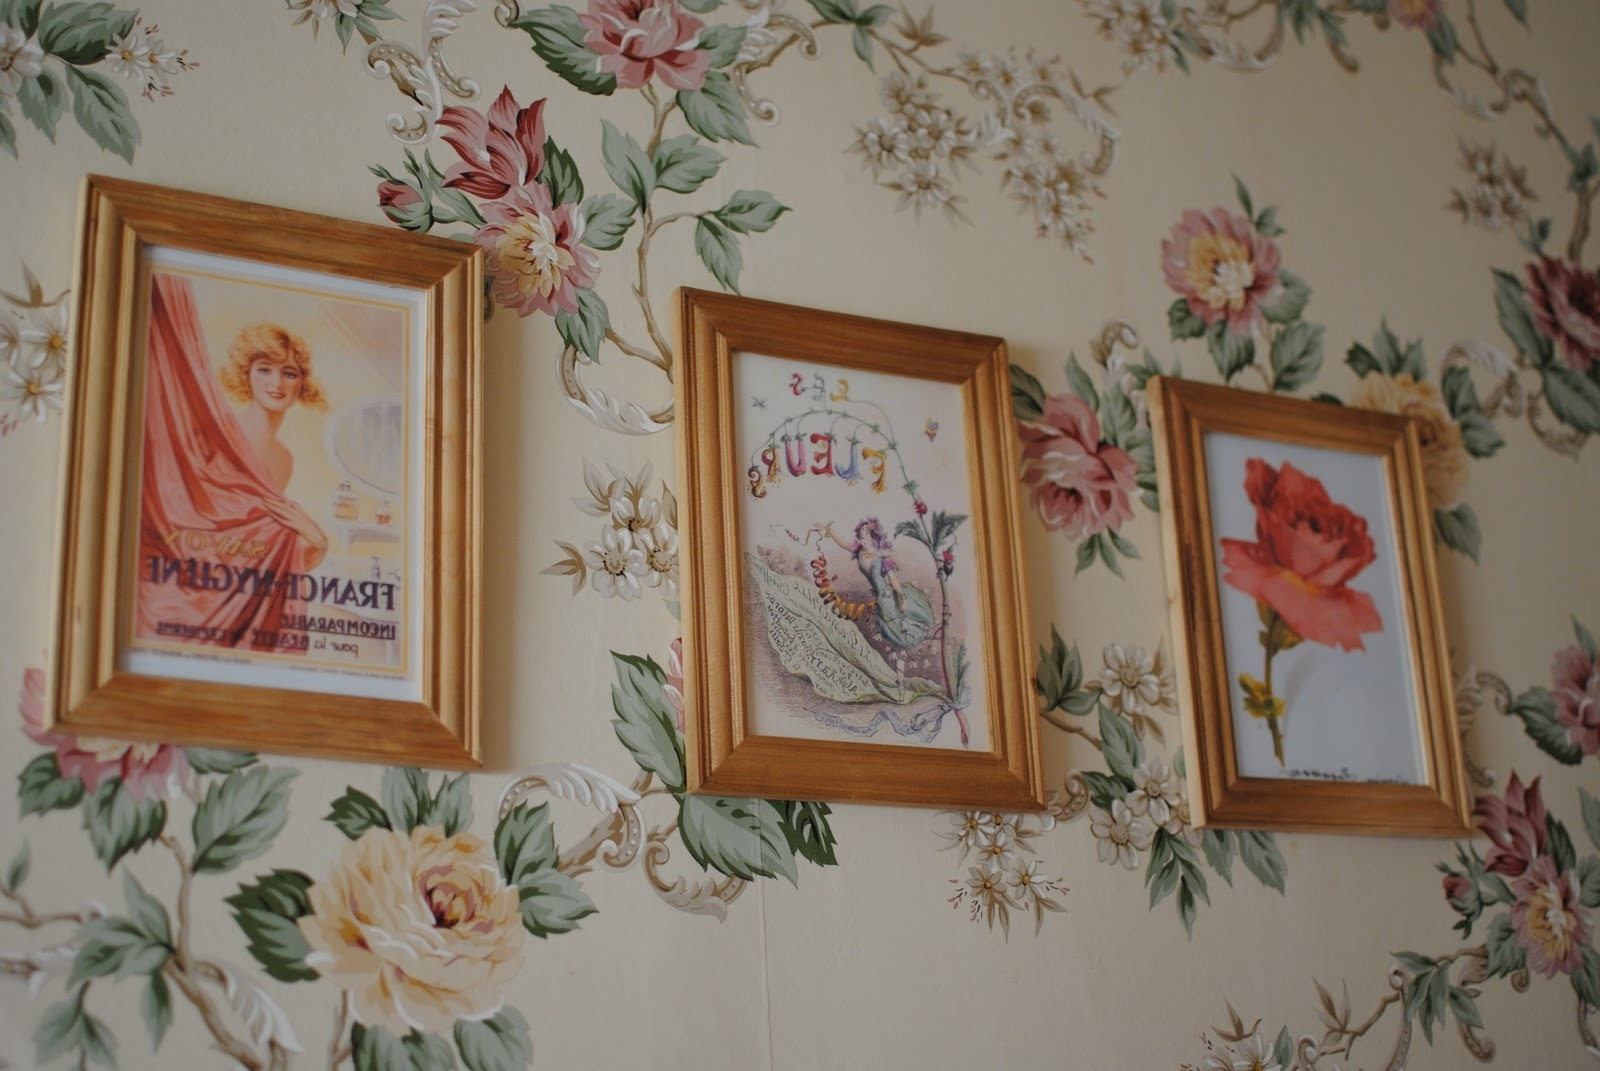 2019 Latest Vintage Bath Framed Art Prints Set Of 3